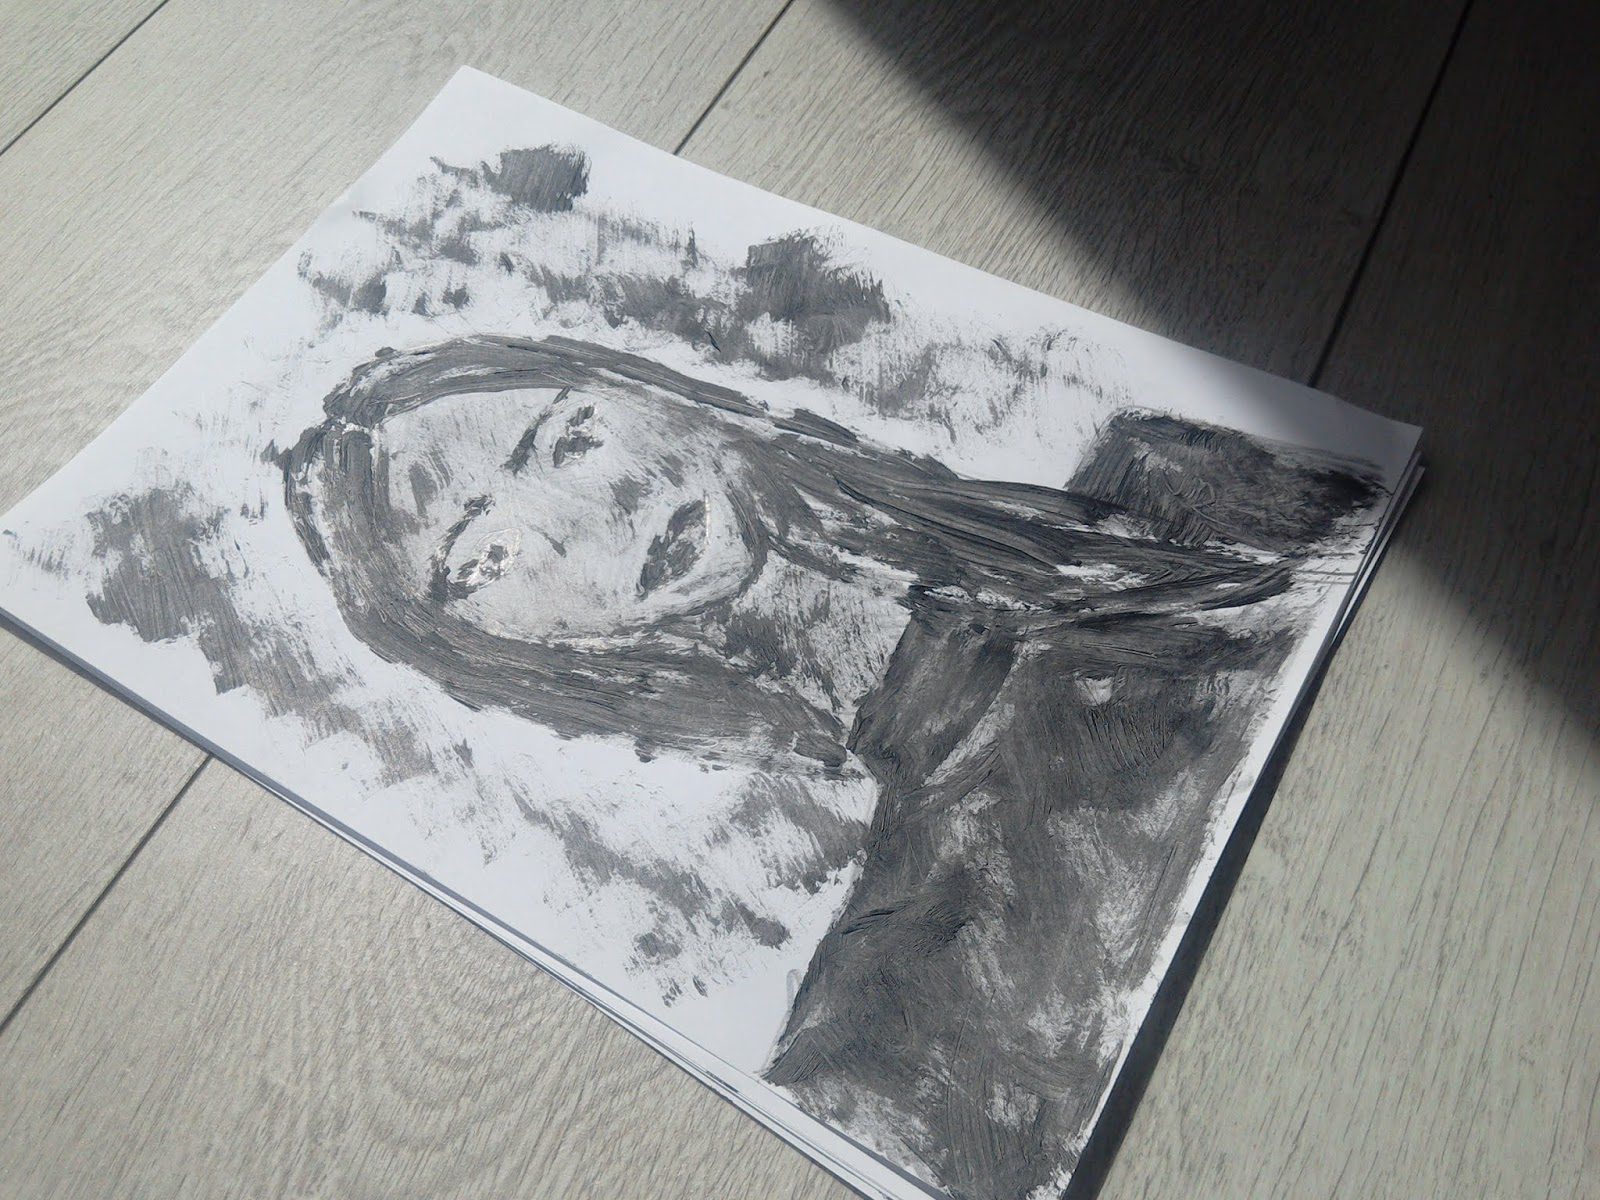 Pencil Drawings And Sketches+ Drawing With A Mascara: My Art Lately